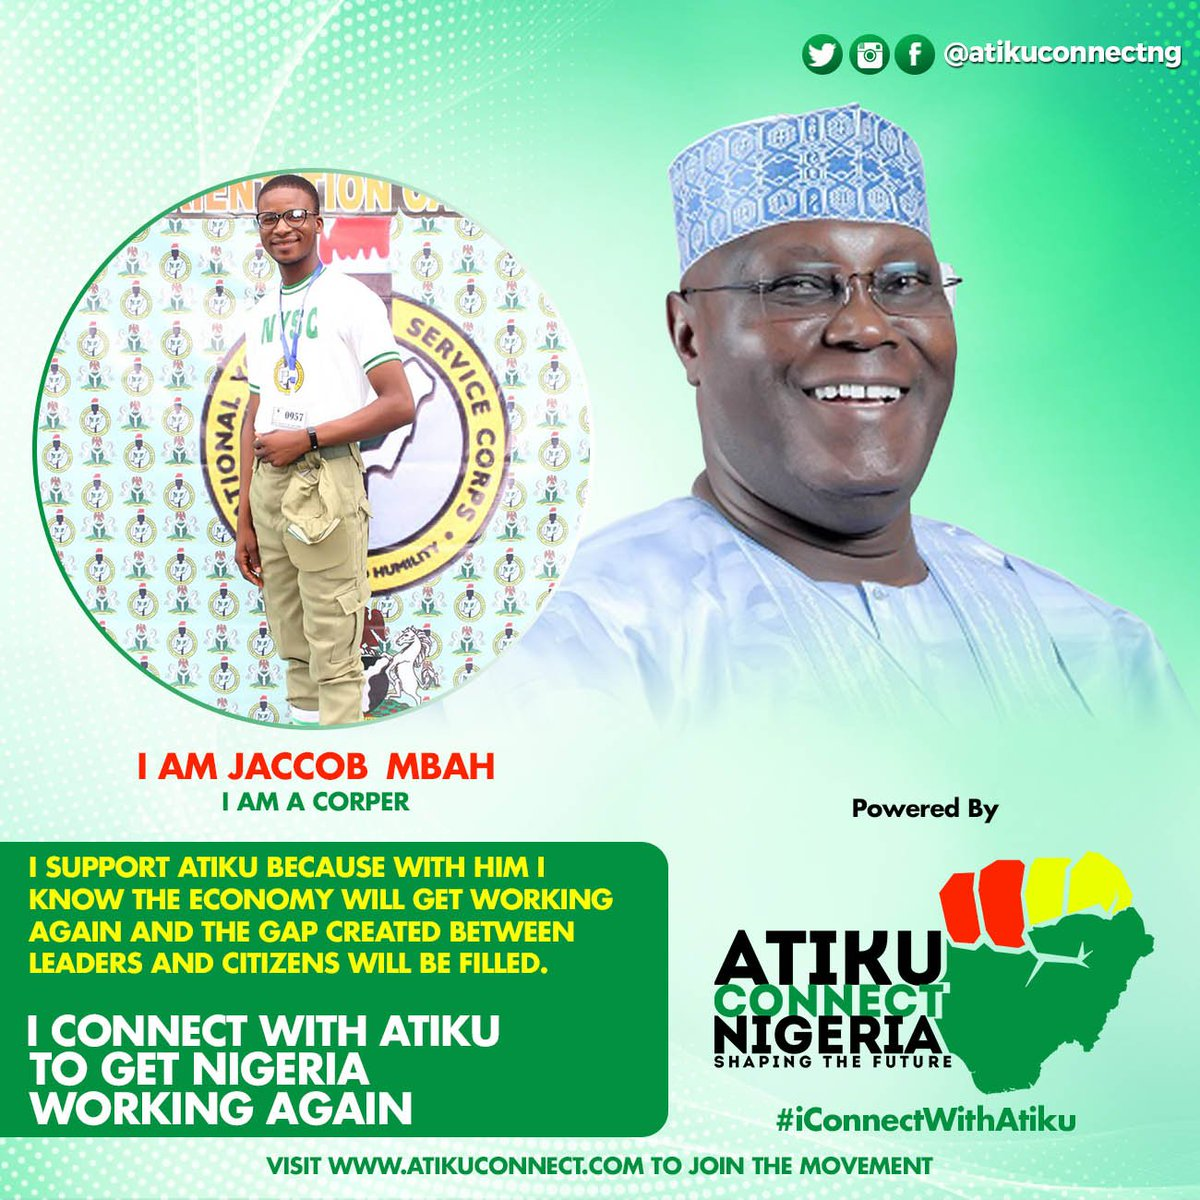 I support @Atiku because with him i know the economy will get working again and the gap created between  leaders and citizens will be filled. #iConnectWithAtiku to Get Nigeria Working  #AtikuConnect #AtikuConnectNigeria #AtikuObi2019 @YouthsForAtiku @SpokesManAtiku <br>http://pic.twitter.com/7kIBkMAM2V